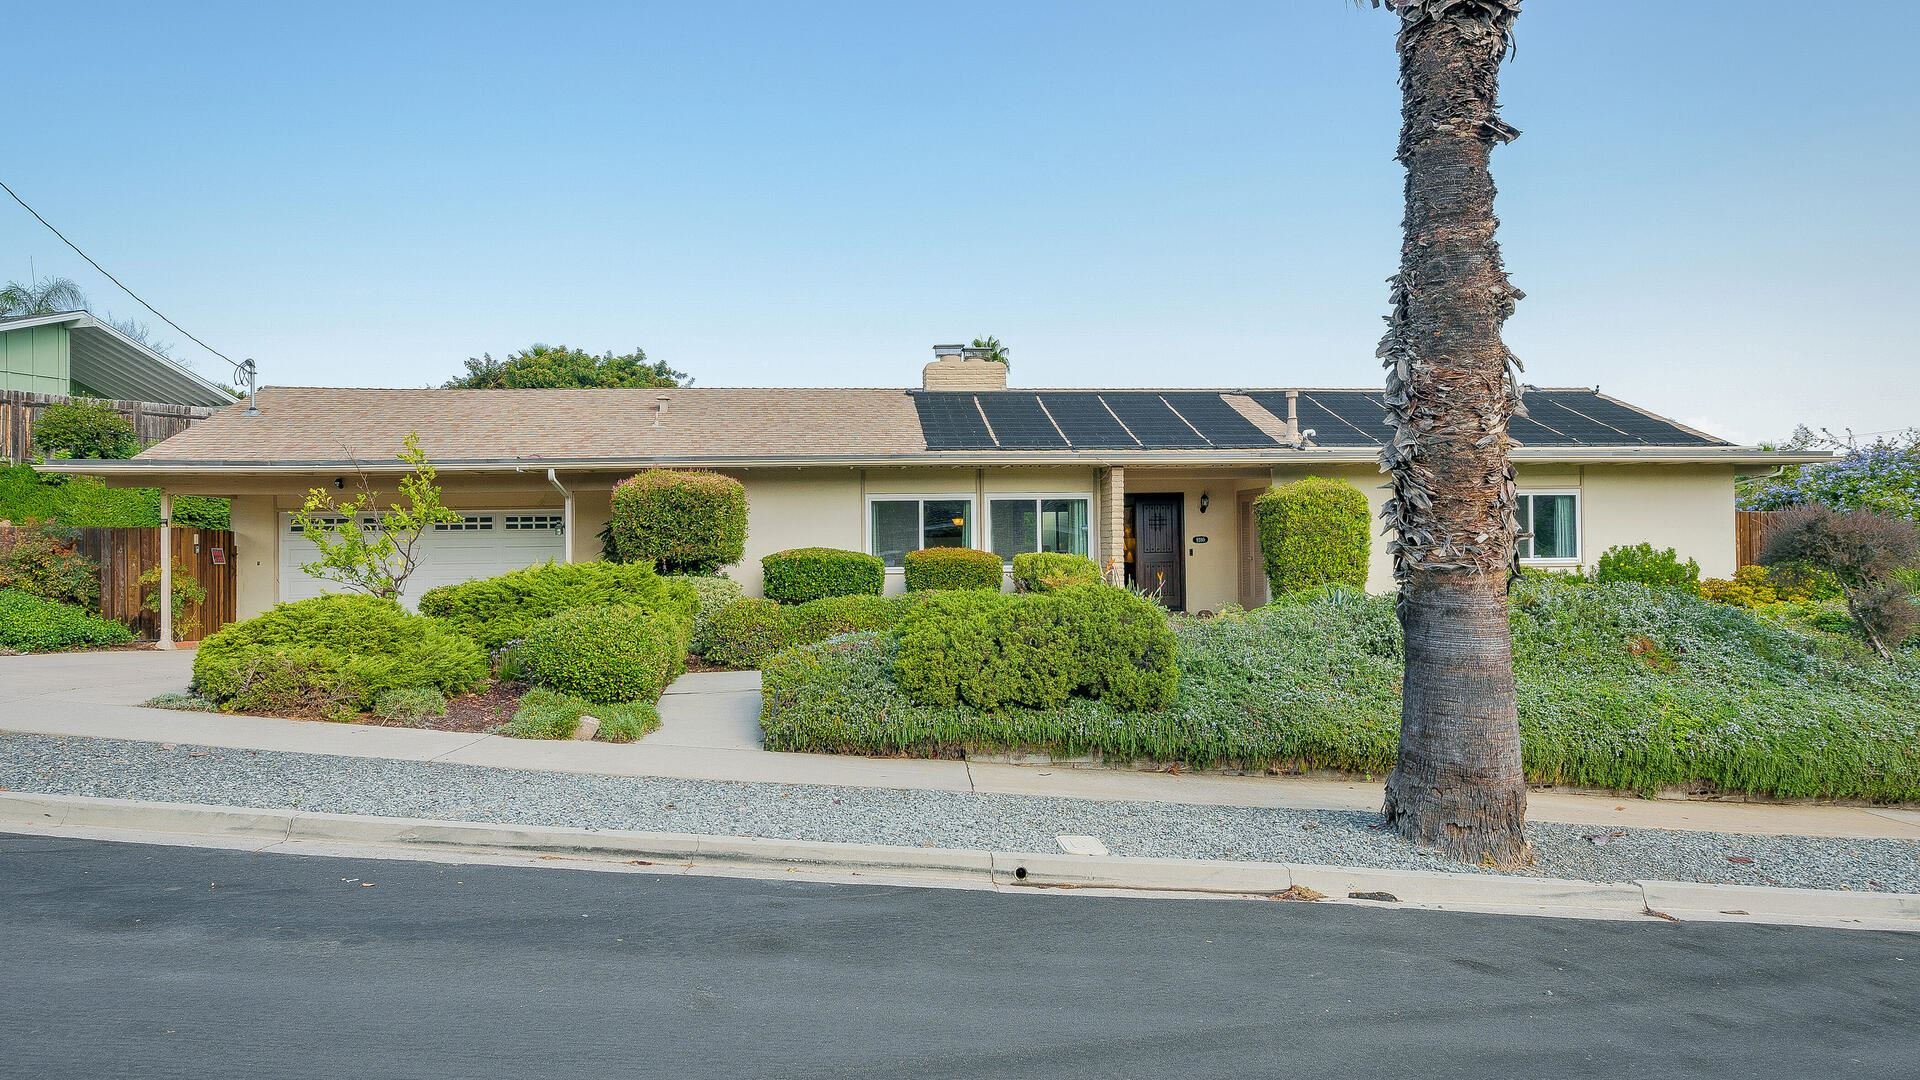 FEATURED LISTING: 9380 Monona Dr La Mesa